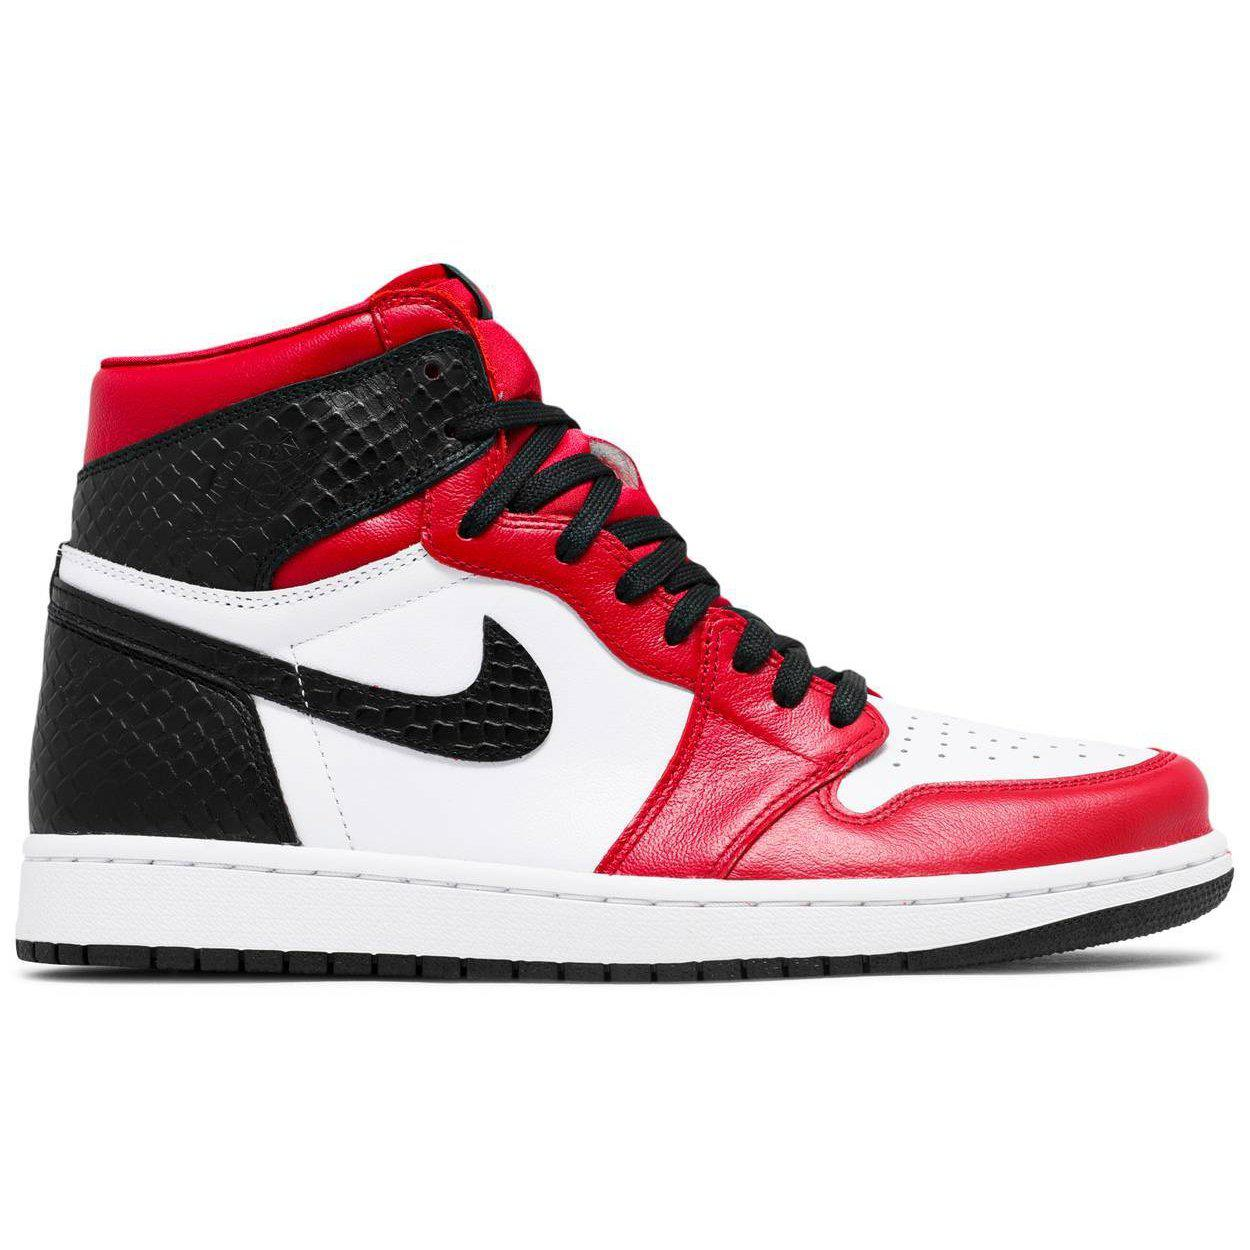 Nike Wmns Air Jordan 1 Retro High OG 'Satin Red' | Waves Never Die | Nike | Sneakers